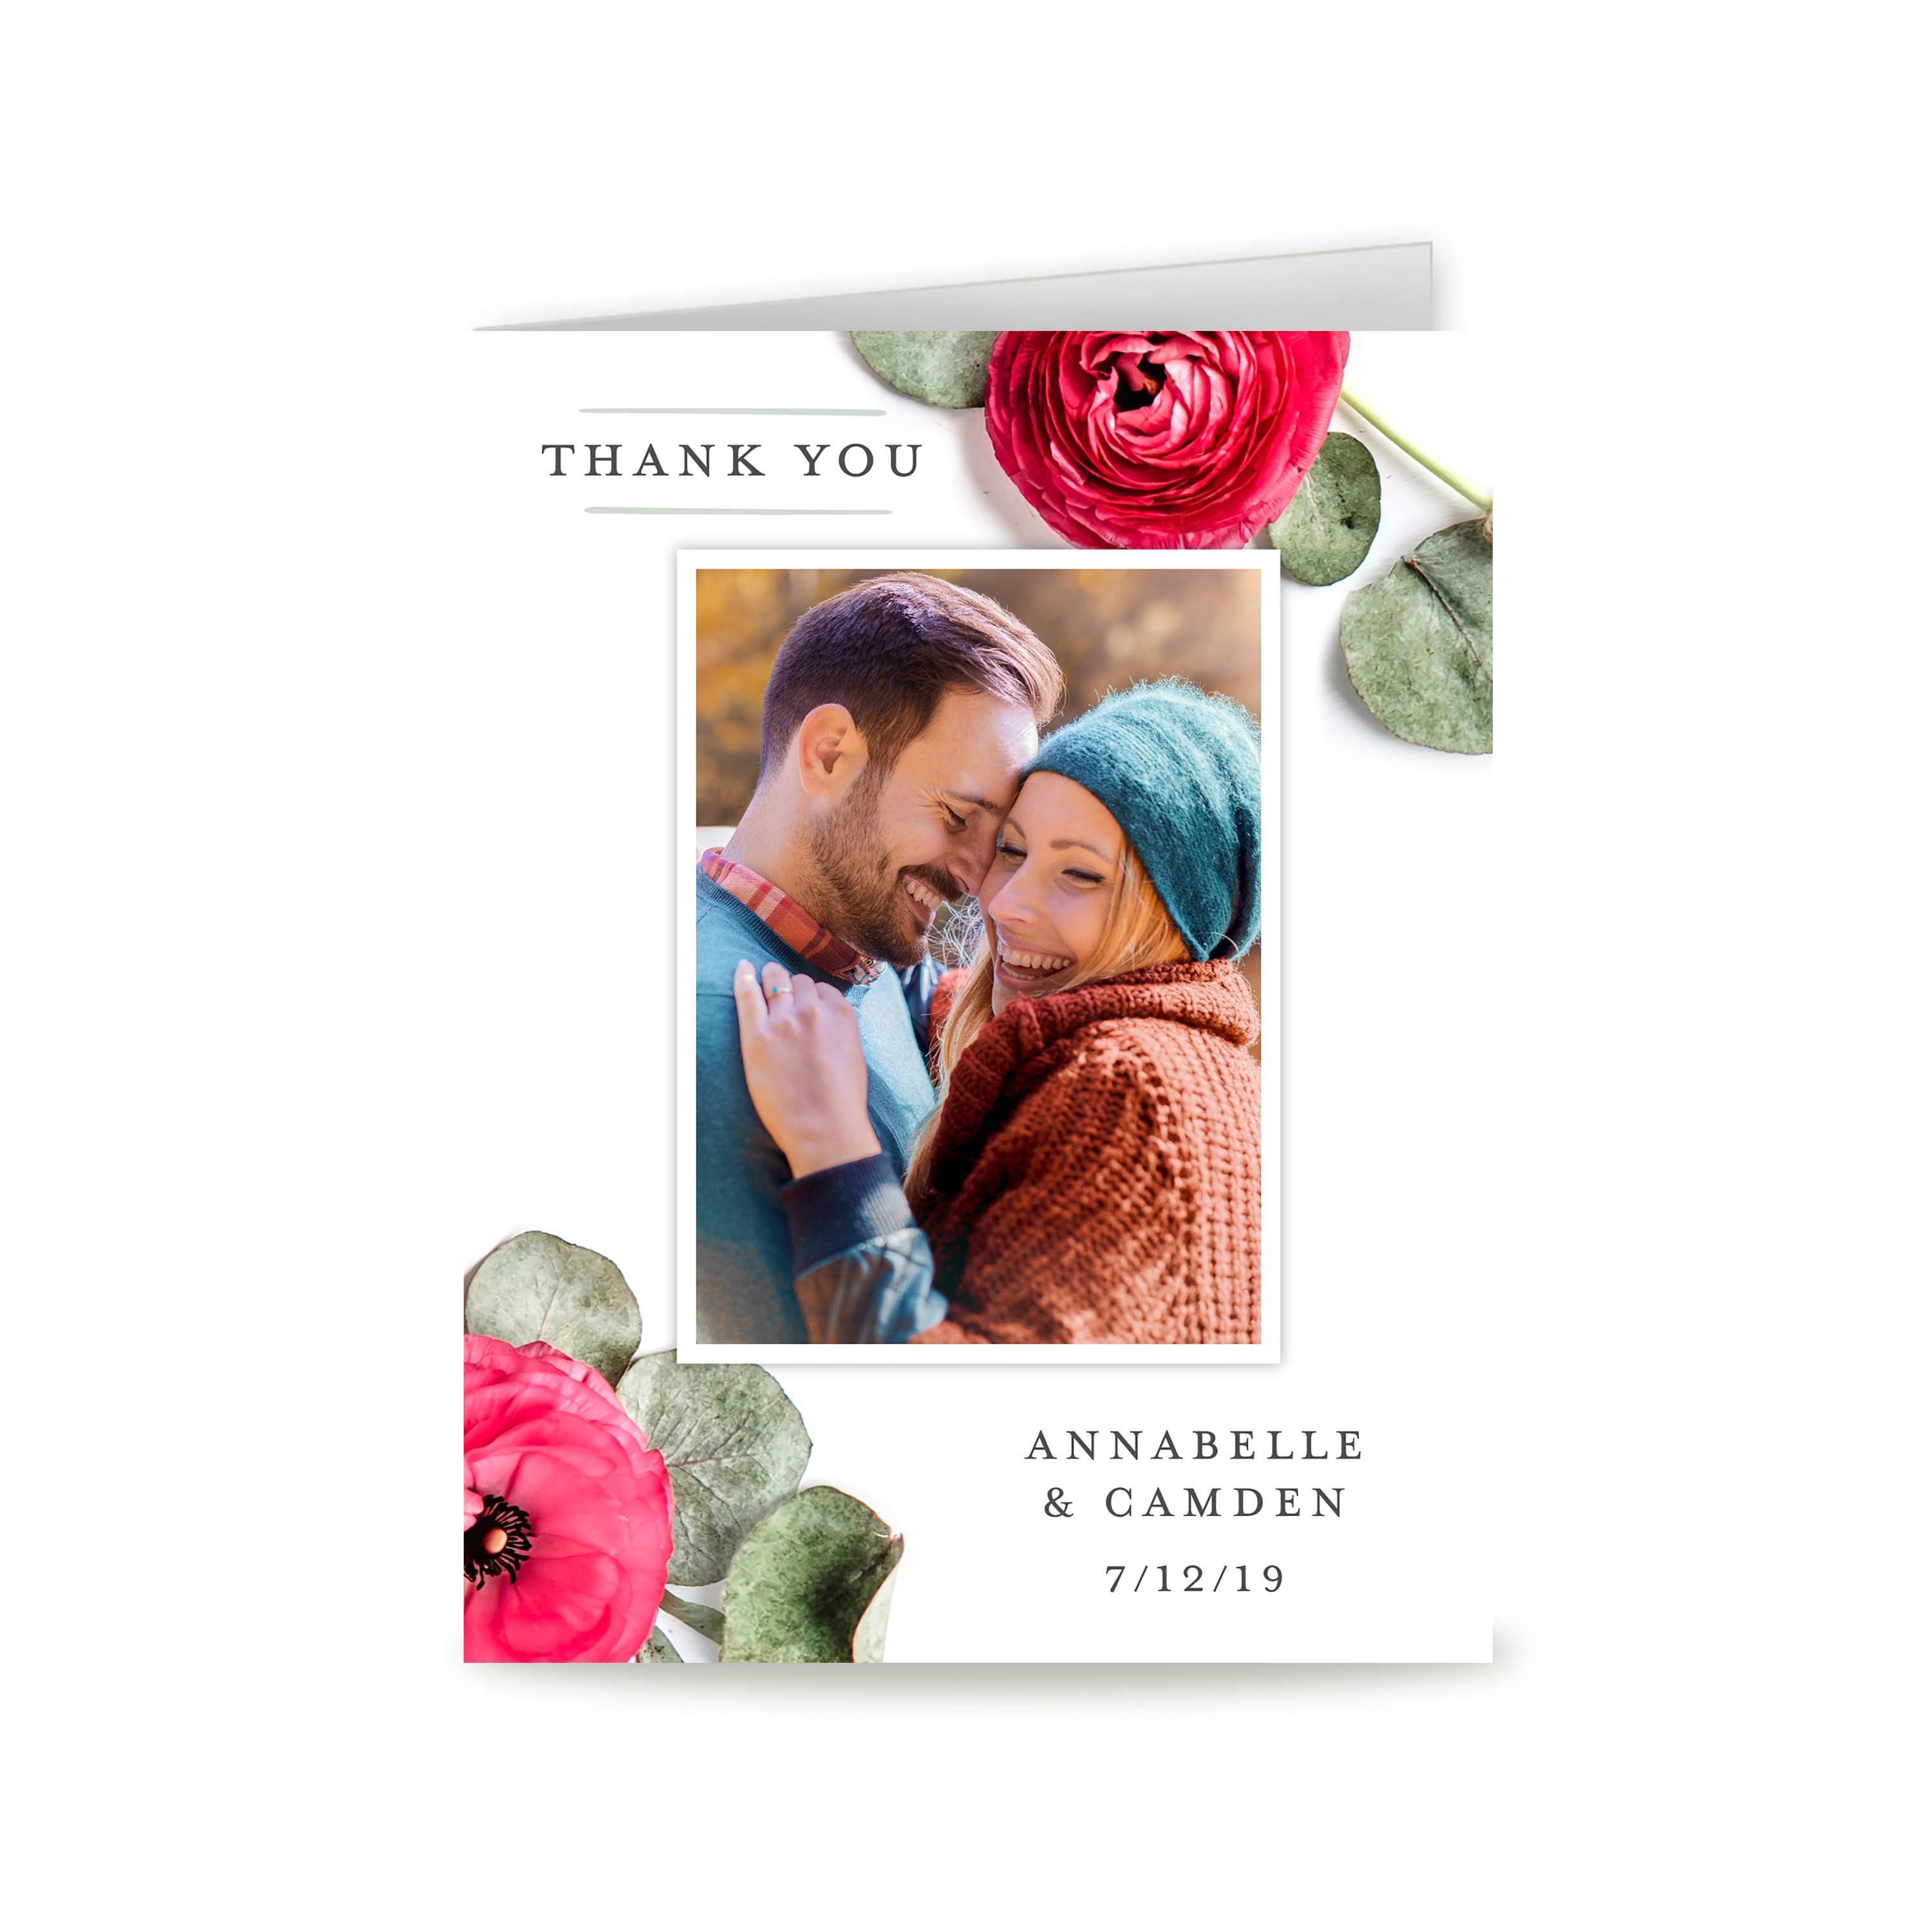 Personalized Wedding Thank You Card - Real Love - 4.25 x 5.5 Folded